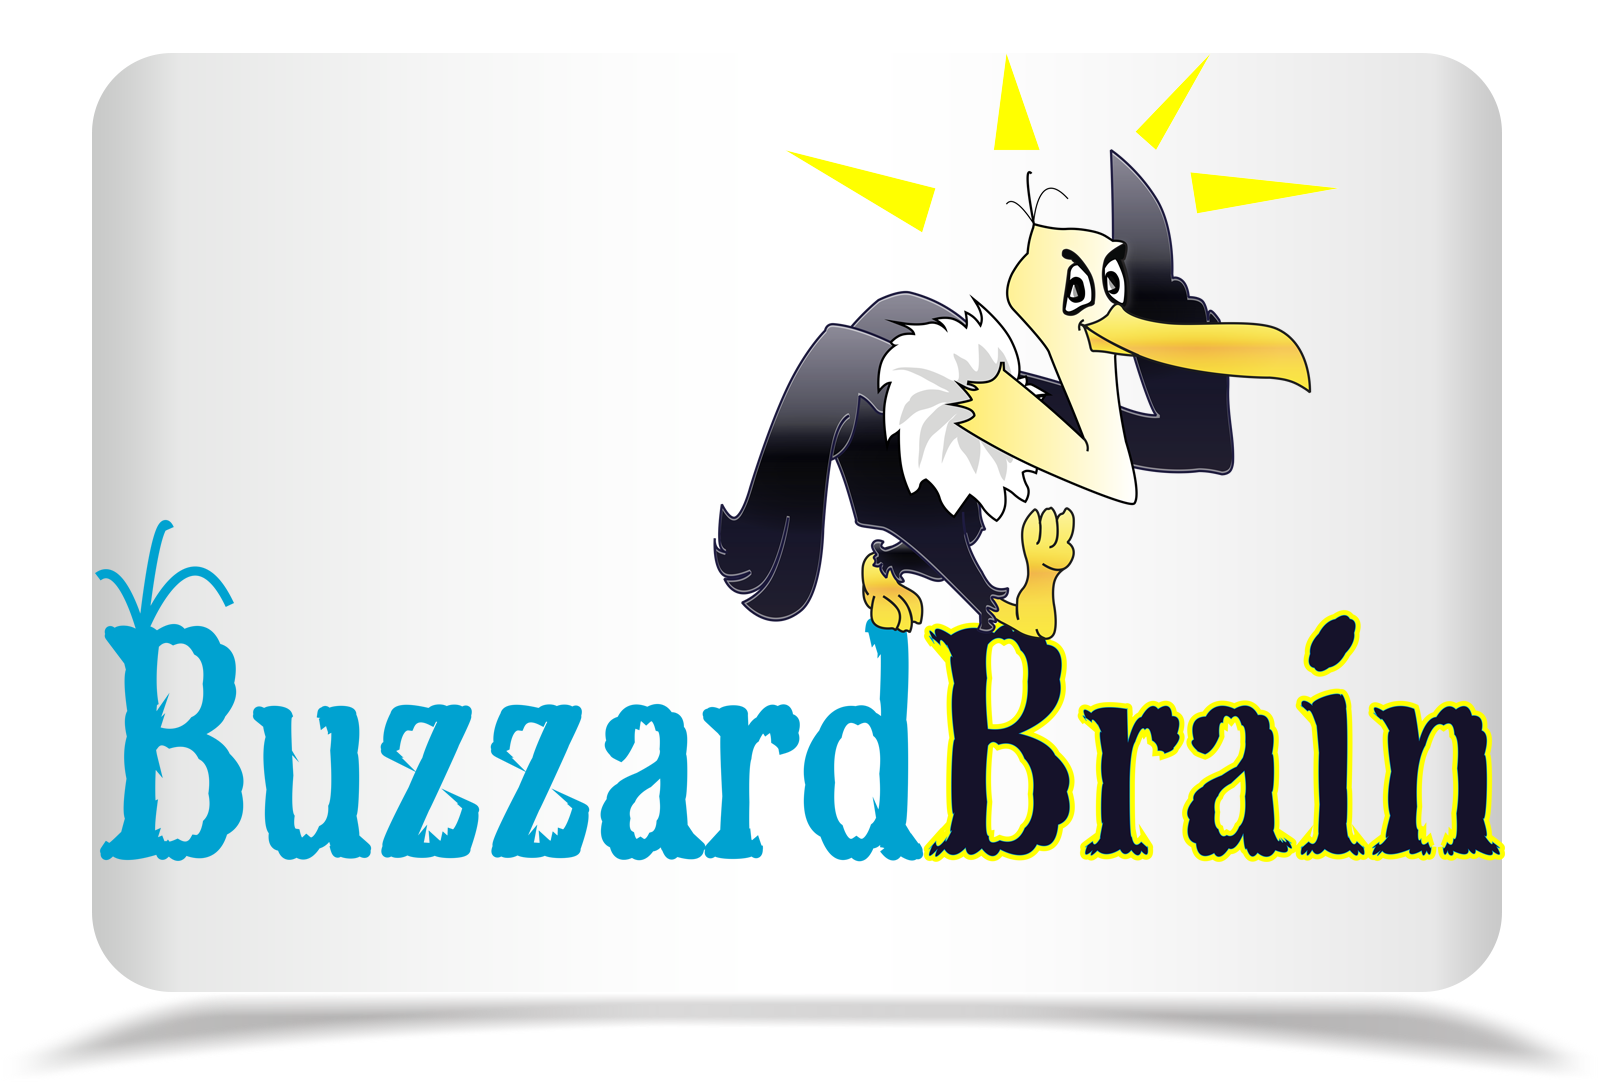 Logo Design by Rozsa Matyas - Entry No. 65 in the Logo Design Contest Buzzard Brain Logo Design.